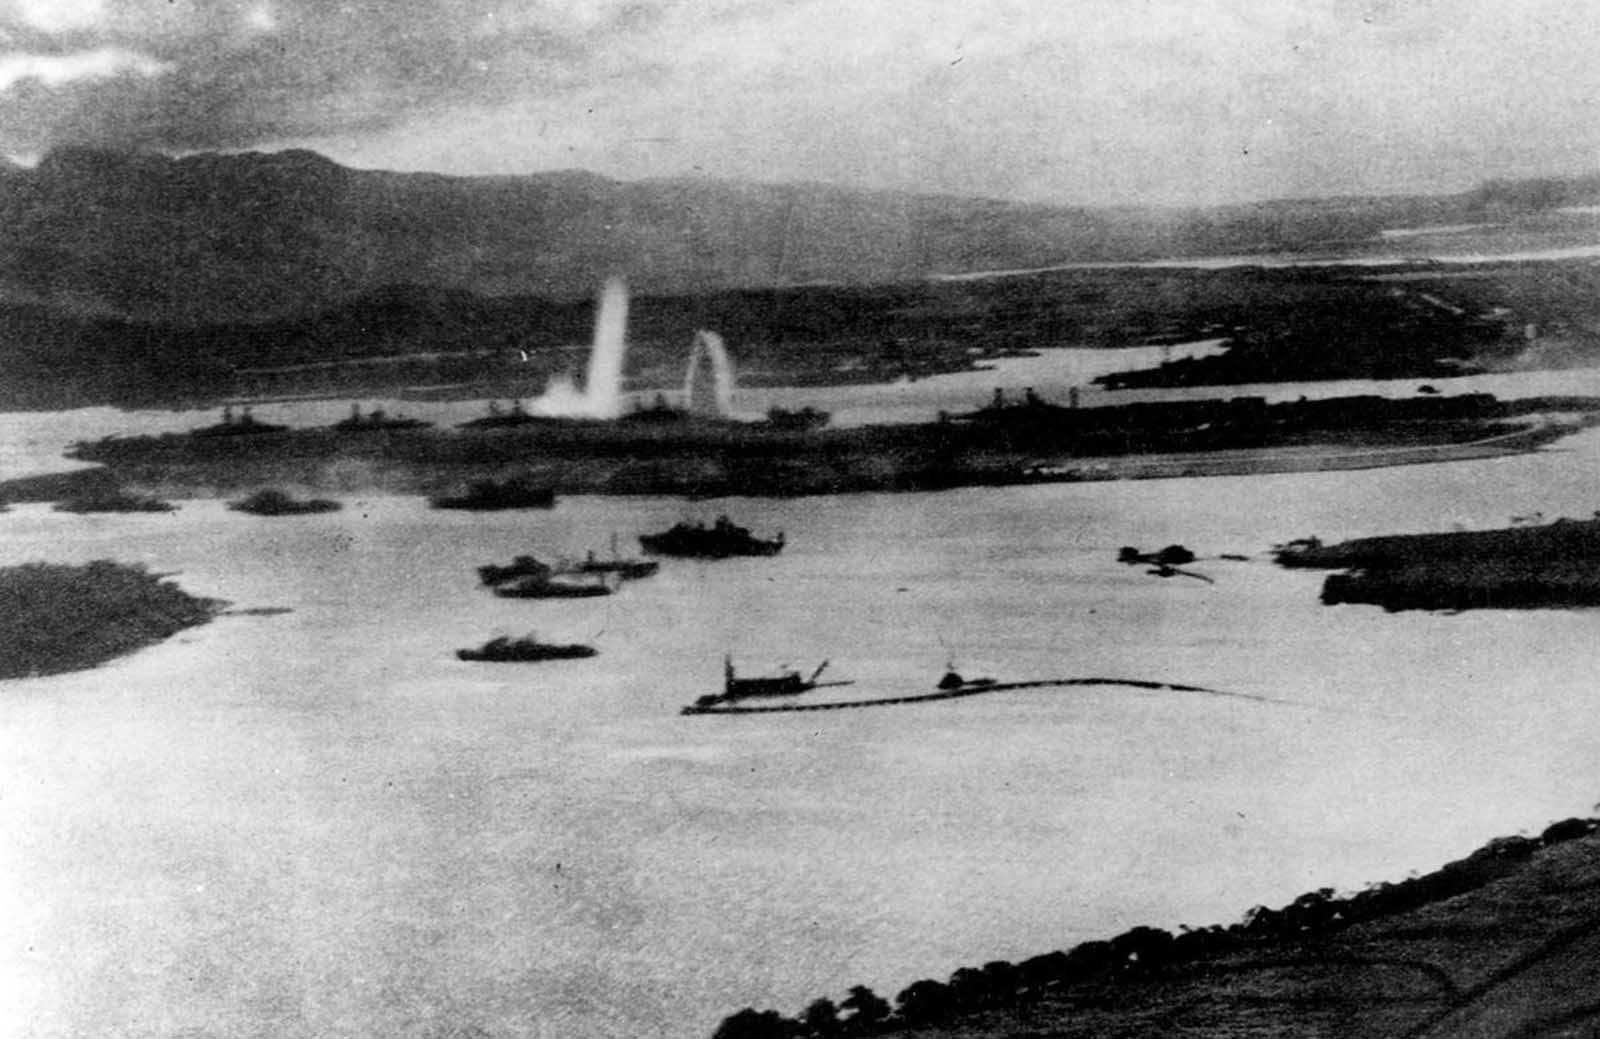 Aerial view of the initial blows struck against American ships, as seen from a Japanese plane over Pearl Harbor.